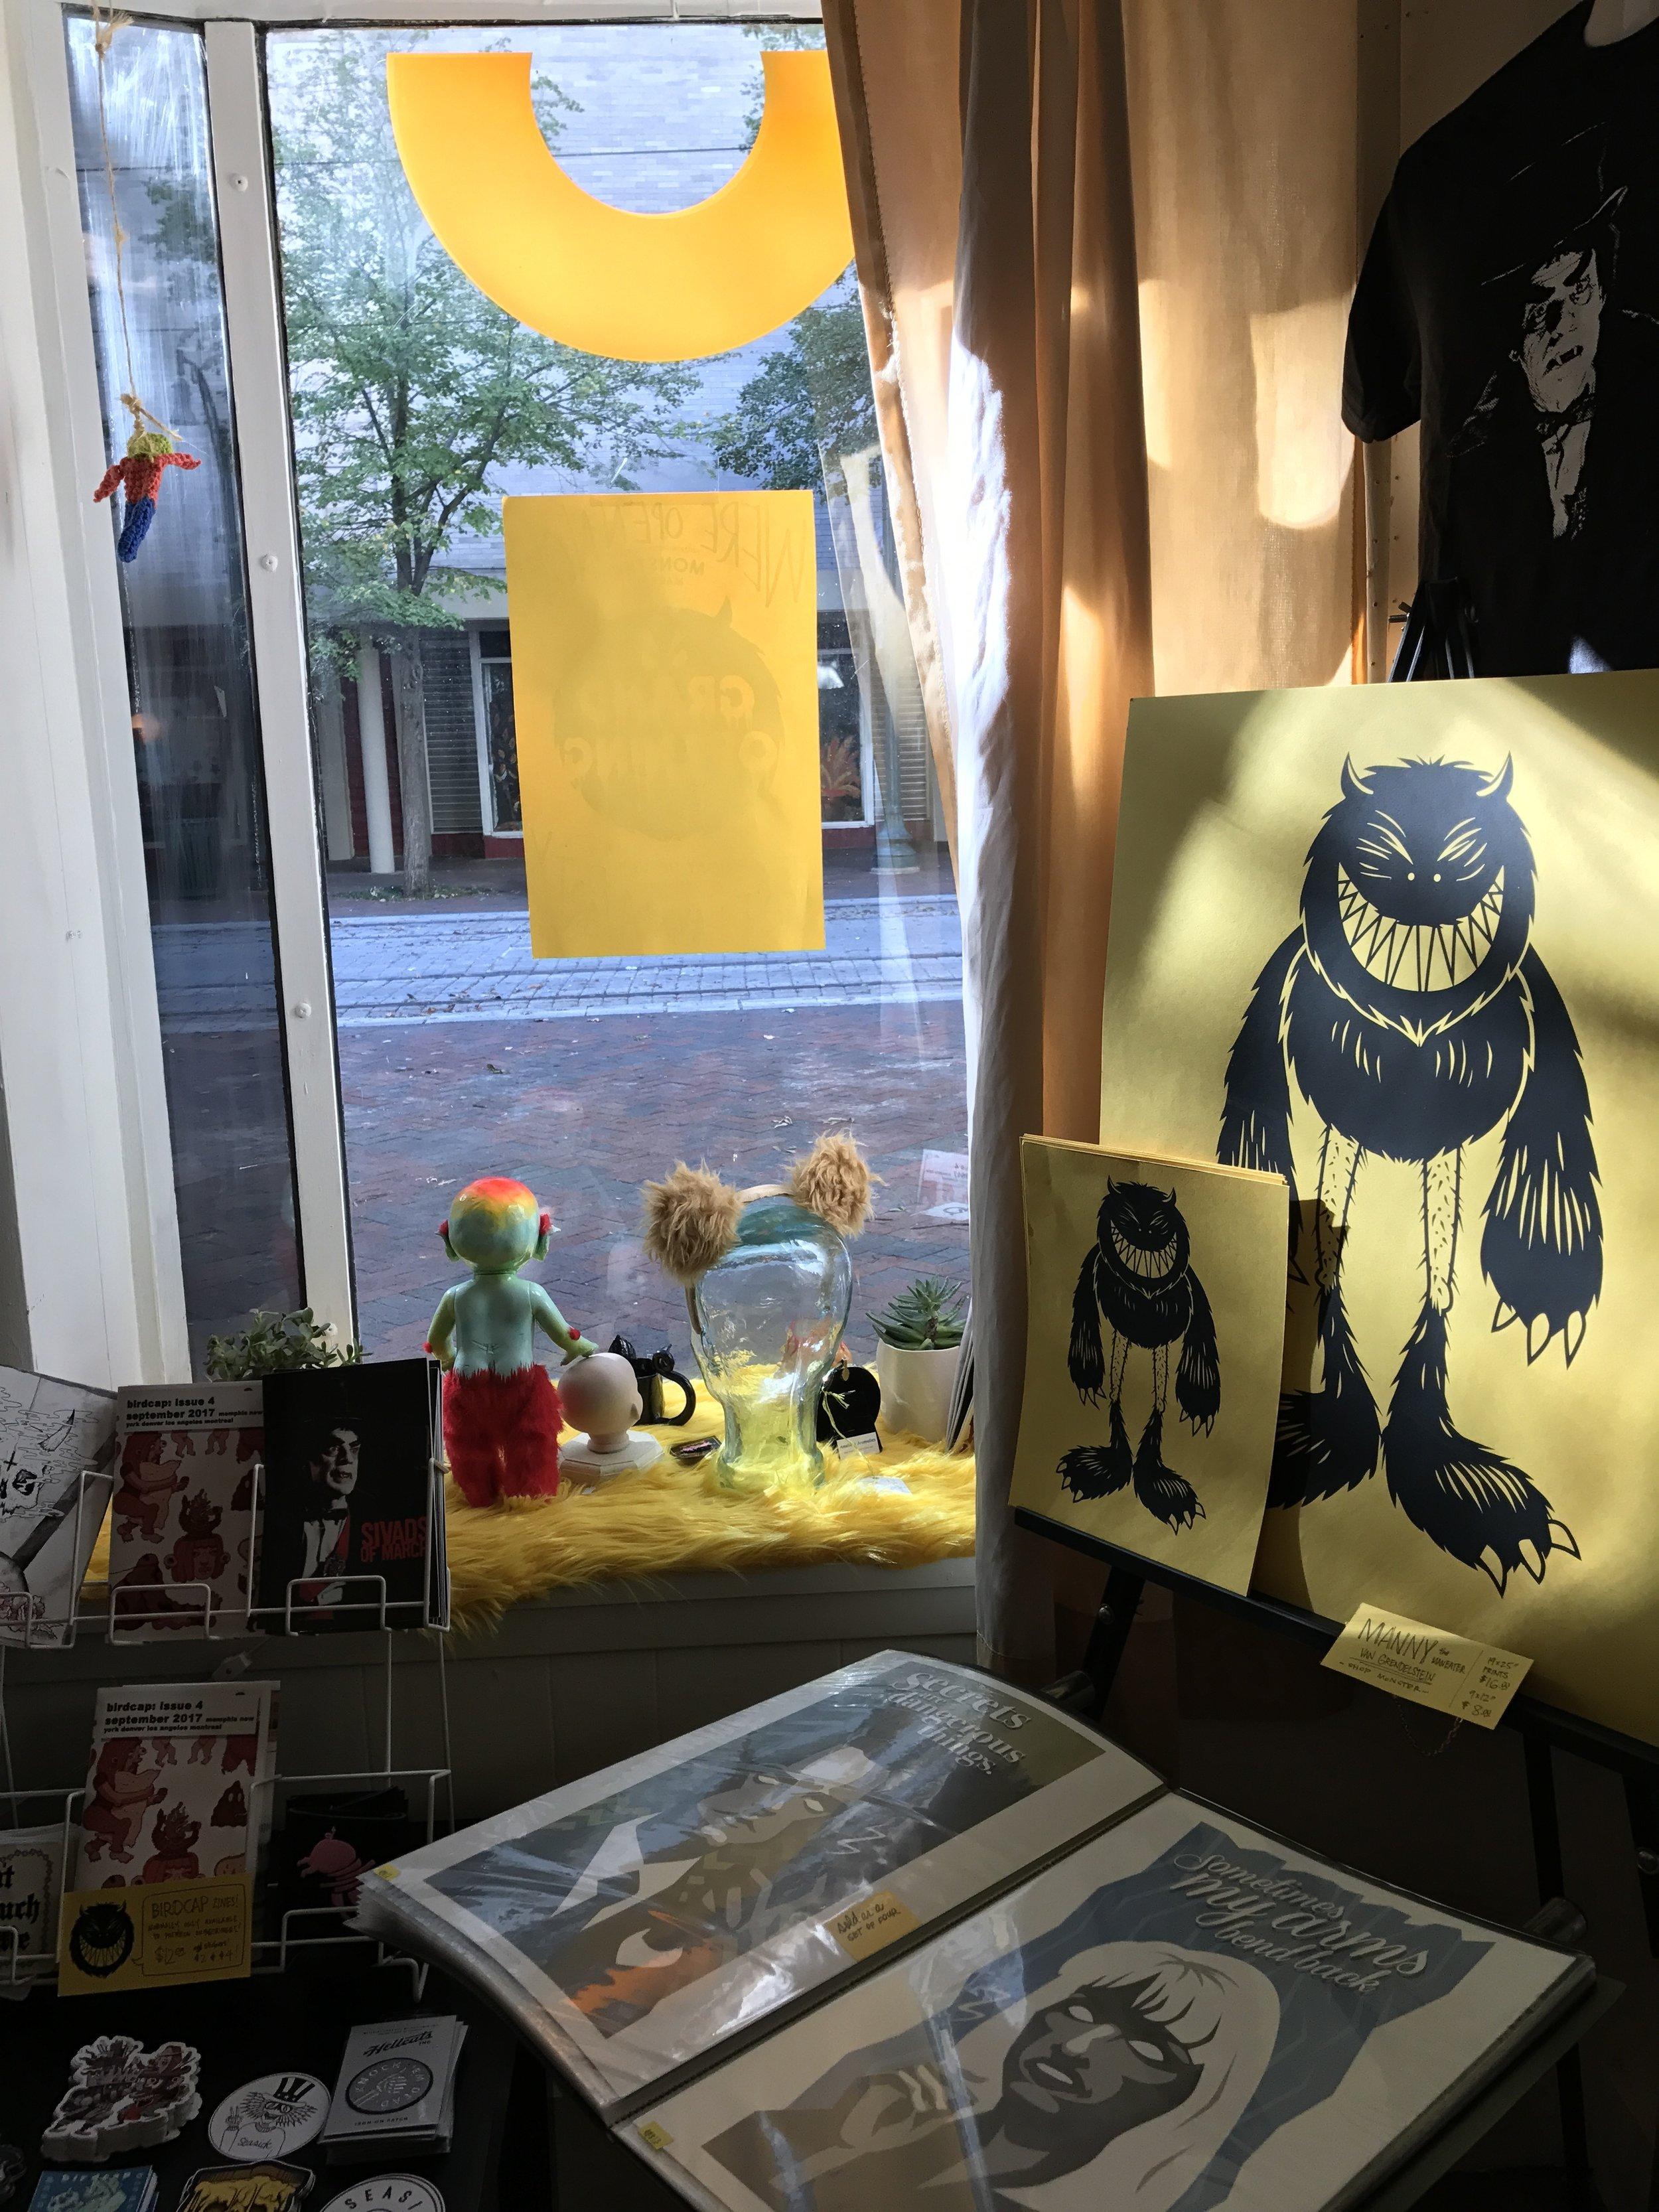 Inside 88 N. Main — a peek at the poster and zine corner